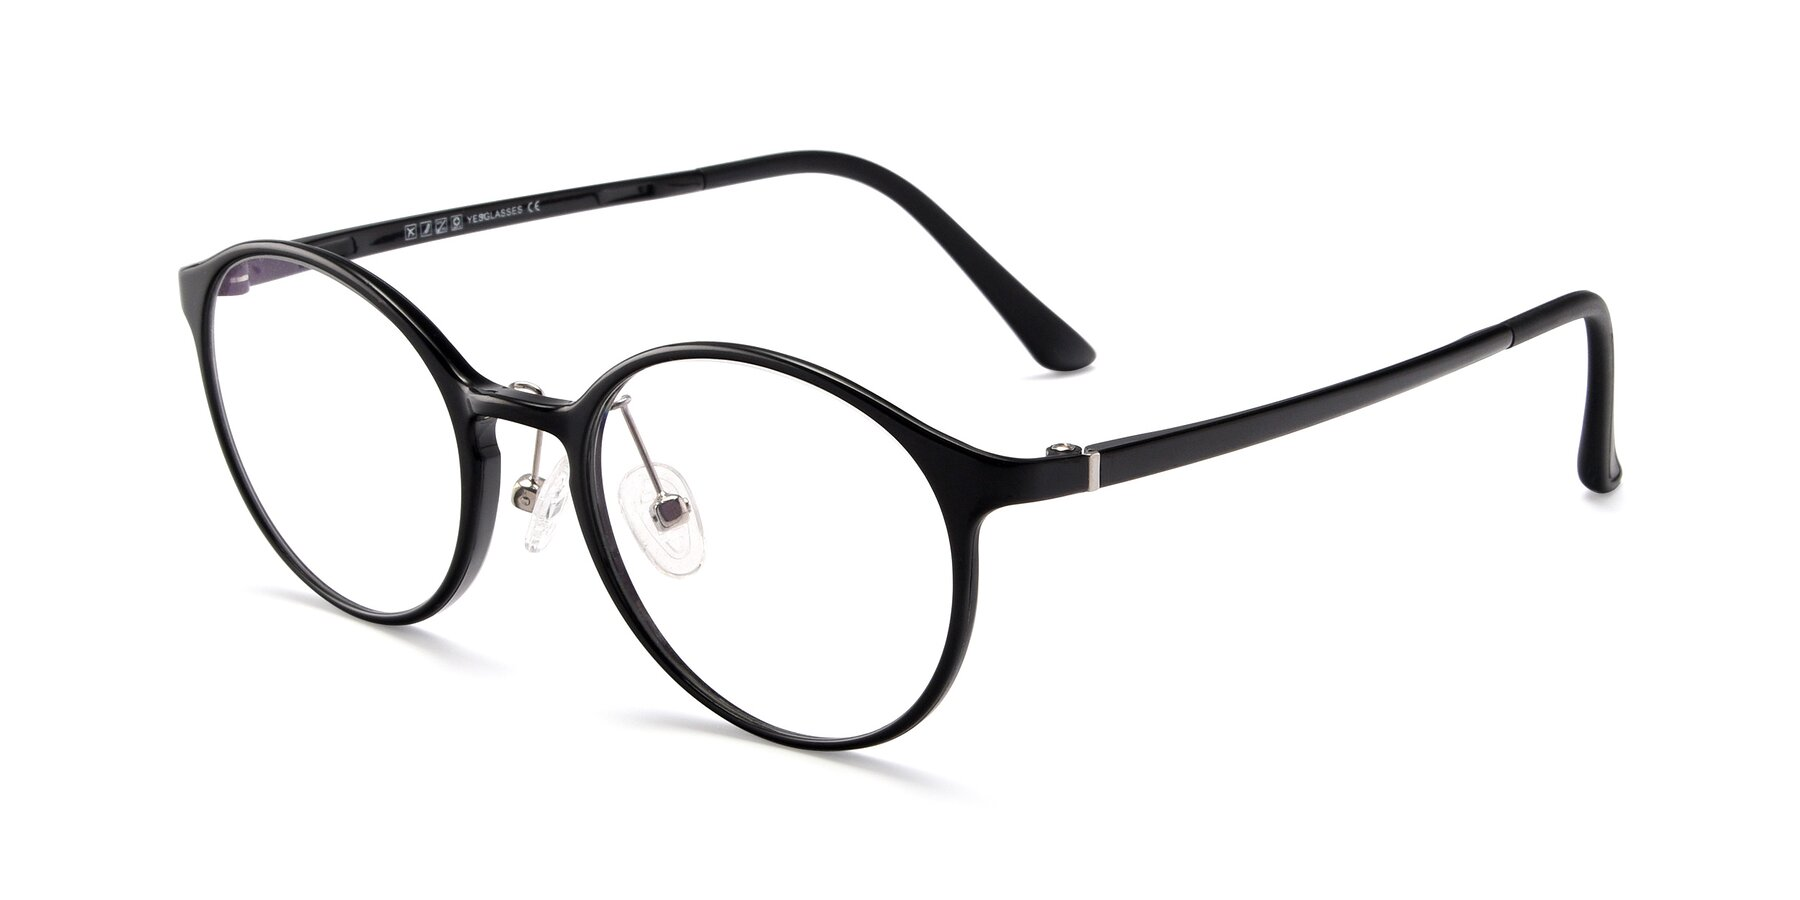 Angle of S7039 in Black with Clear Eyeglass Lenses